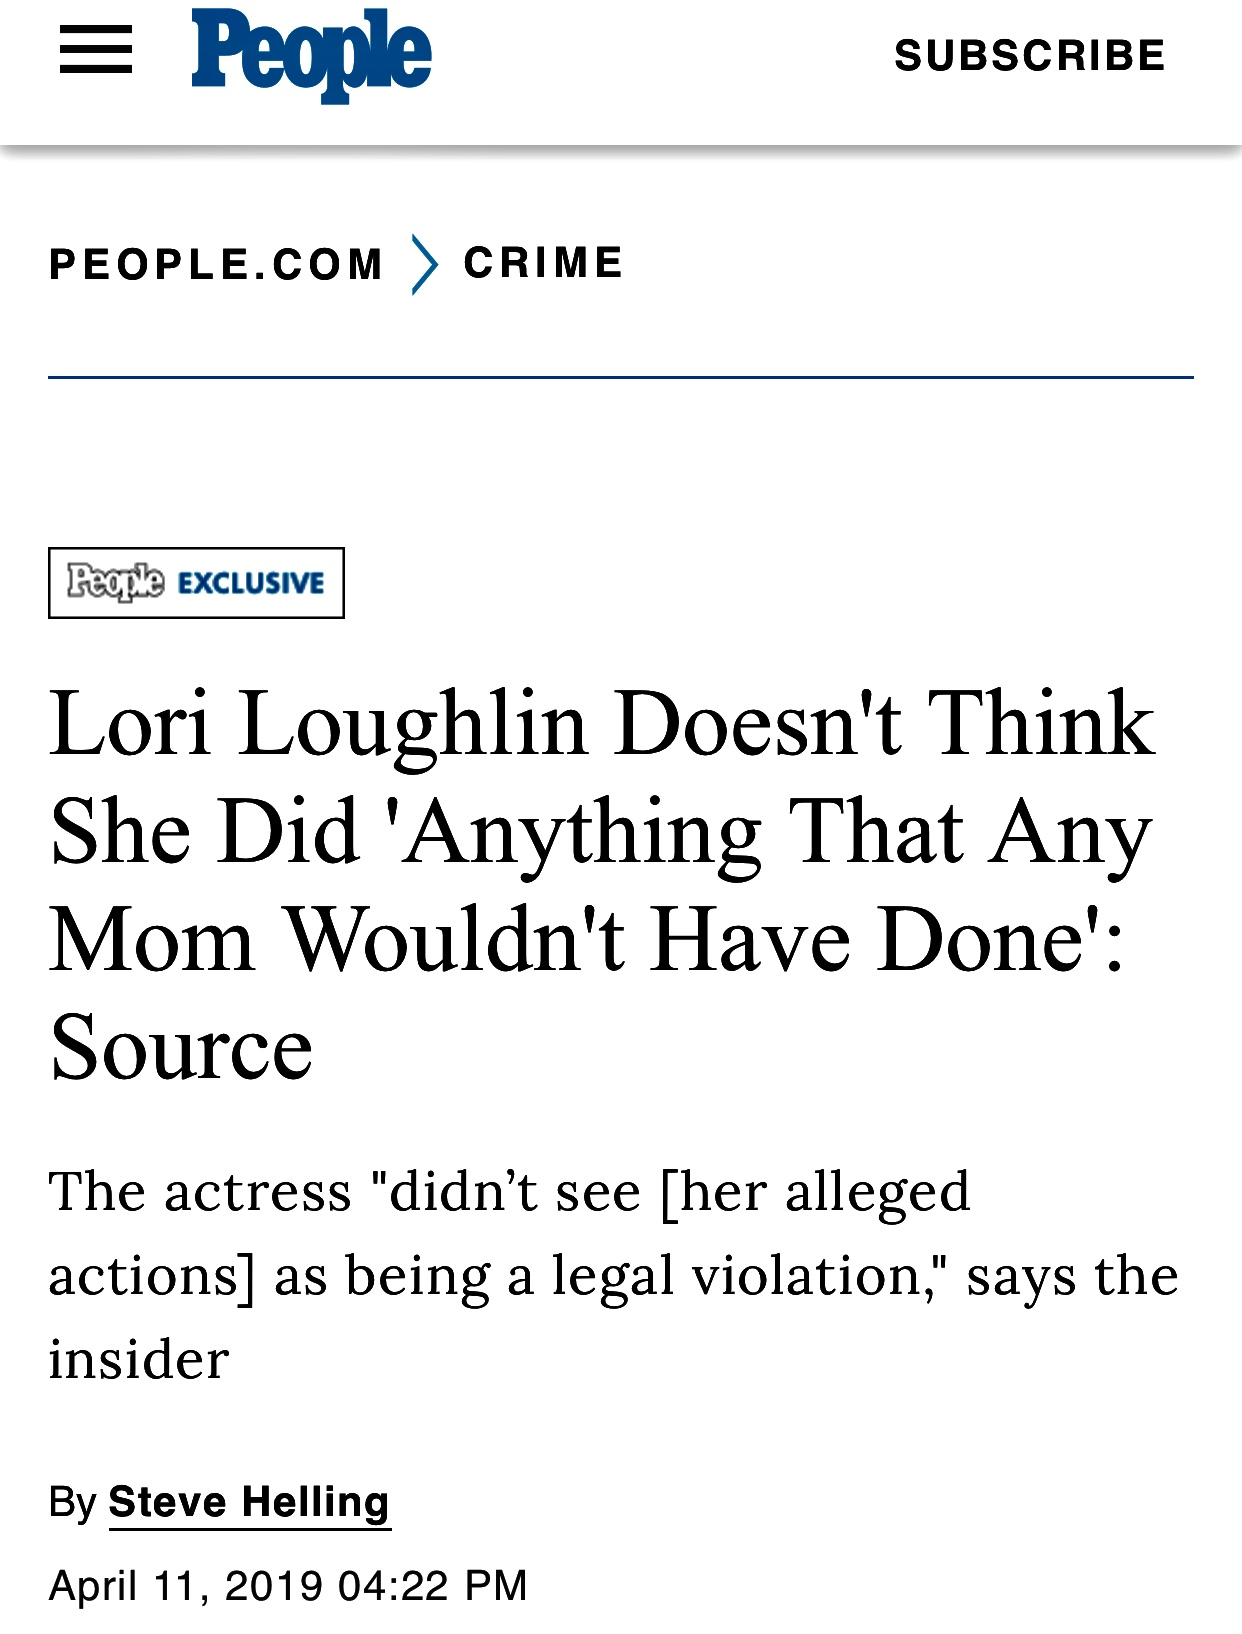 Lori Loughlin Thinks 'Any Mom' Would Have Done It: Source   PEOPLE.com